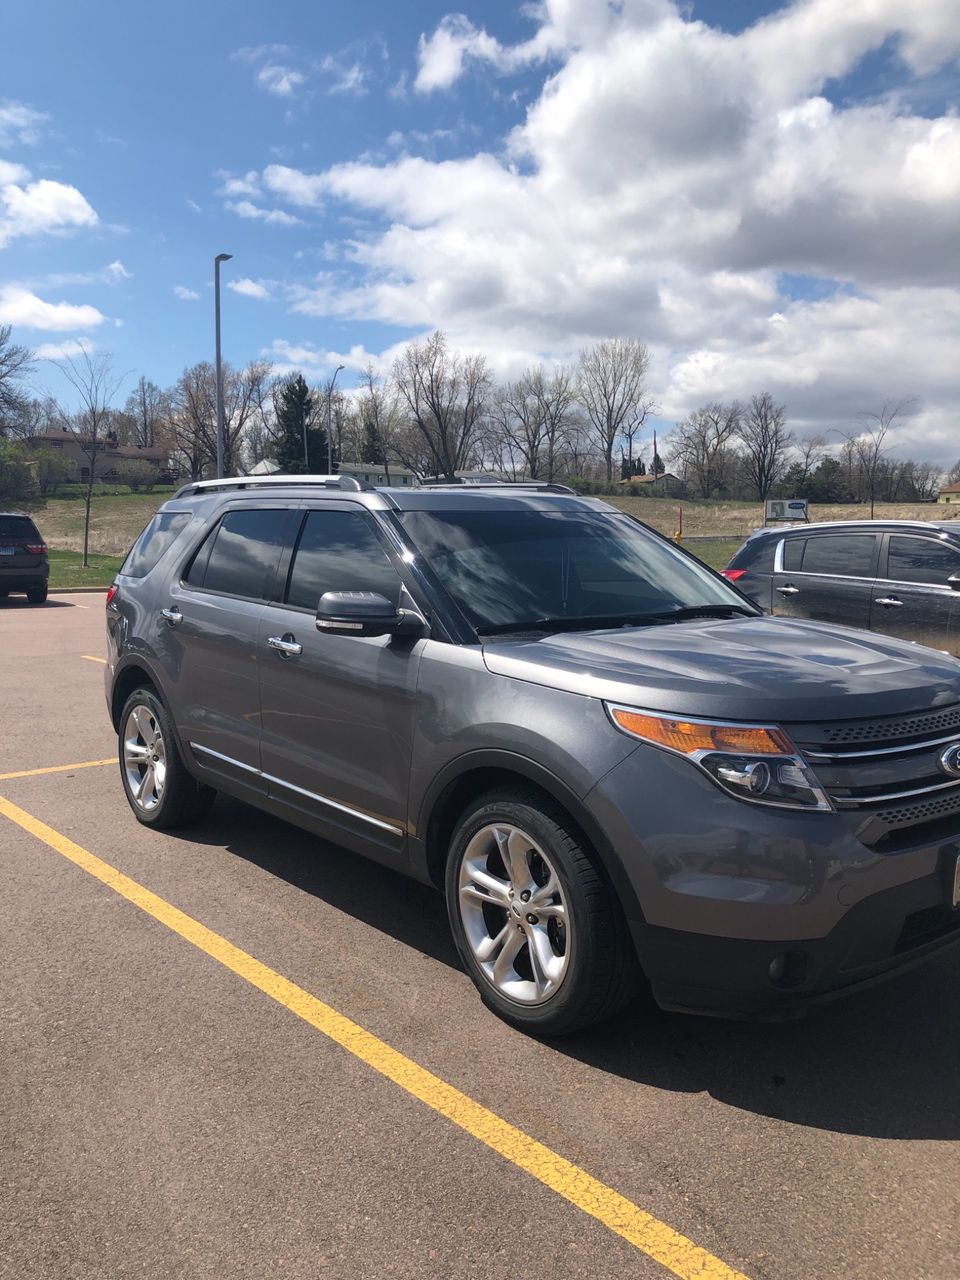 2014 Ford Explorer Limited   Larchwood, IA, Sterling Gray Metallic (Gray), All Wheel